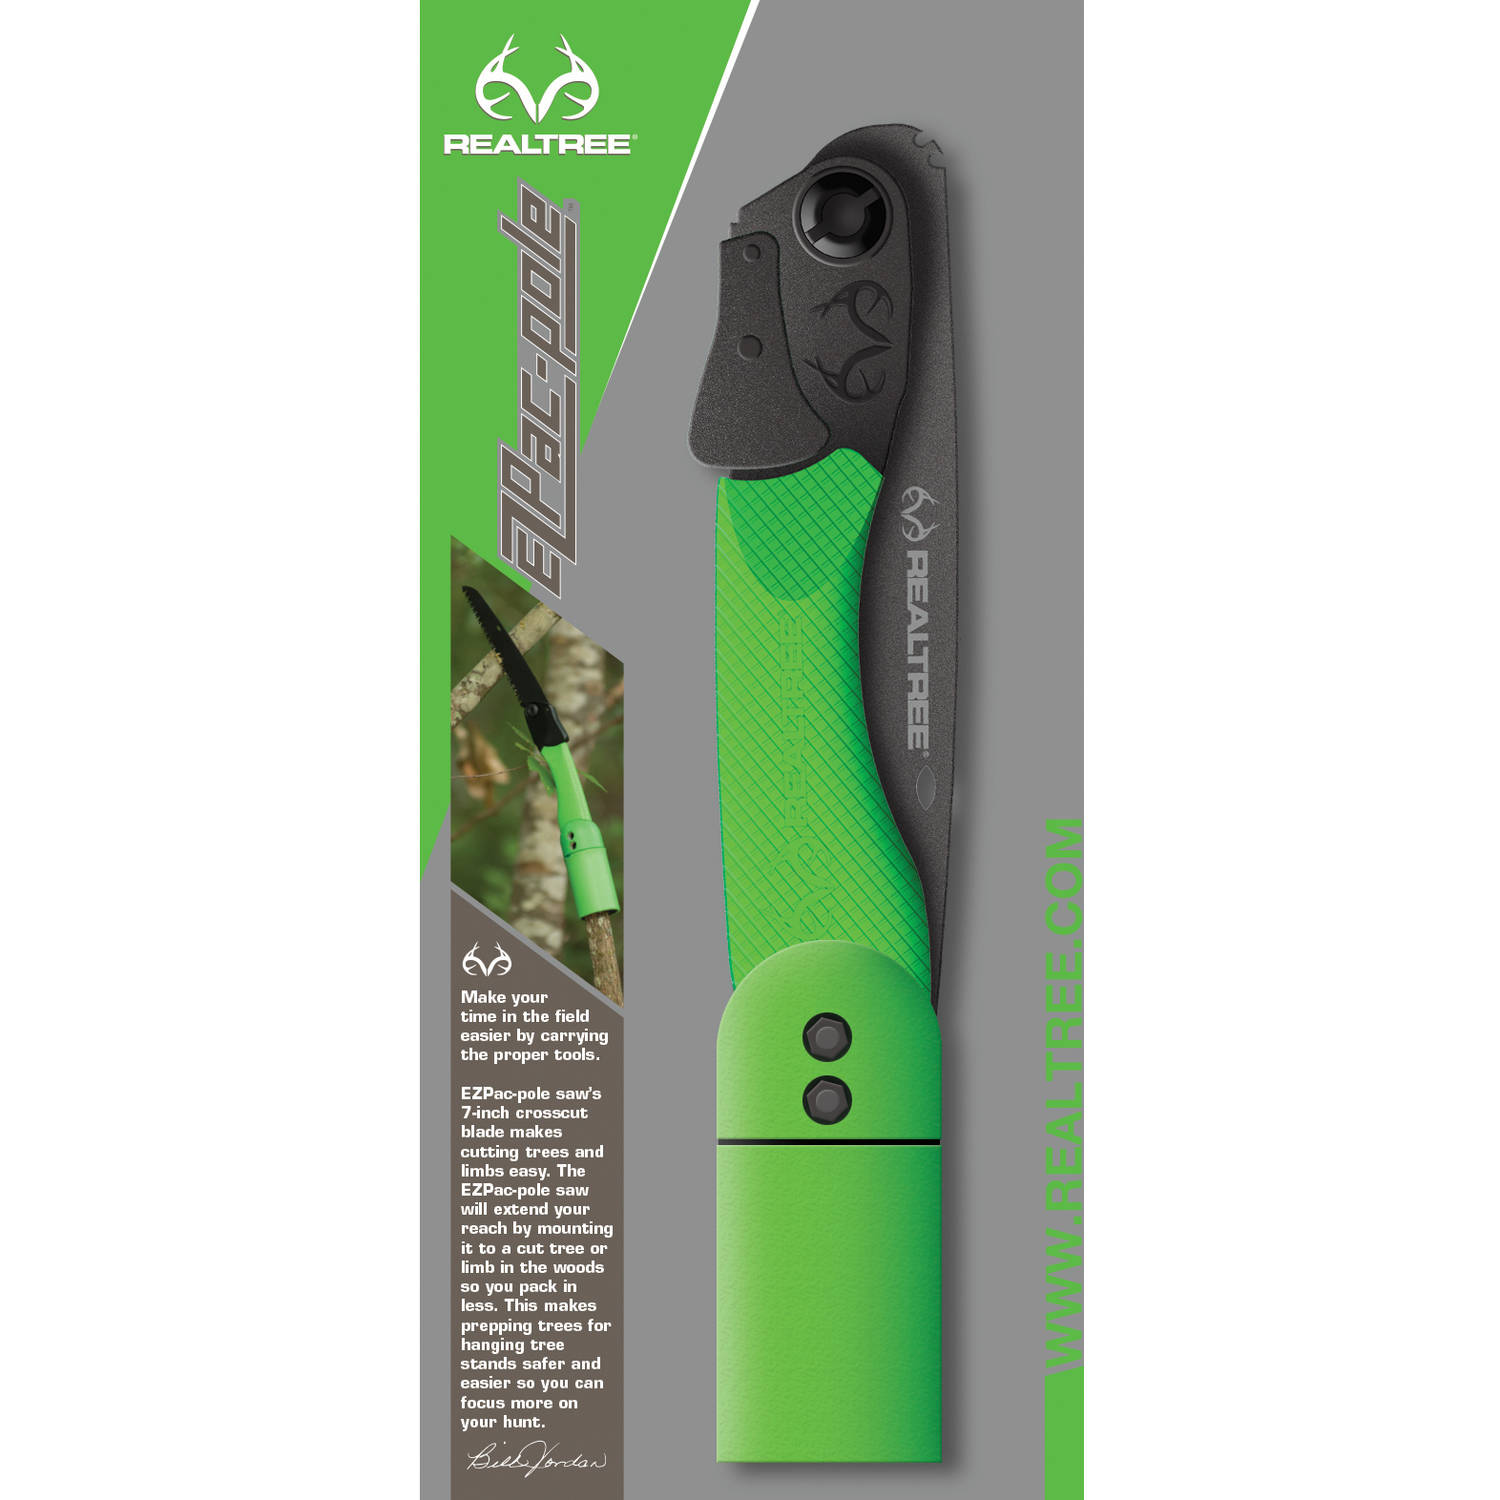 Realtree EZPac-Pole Saw